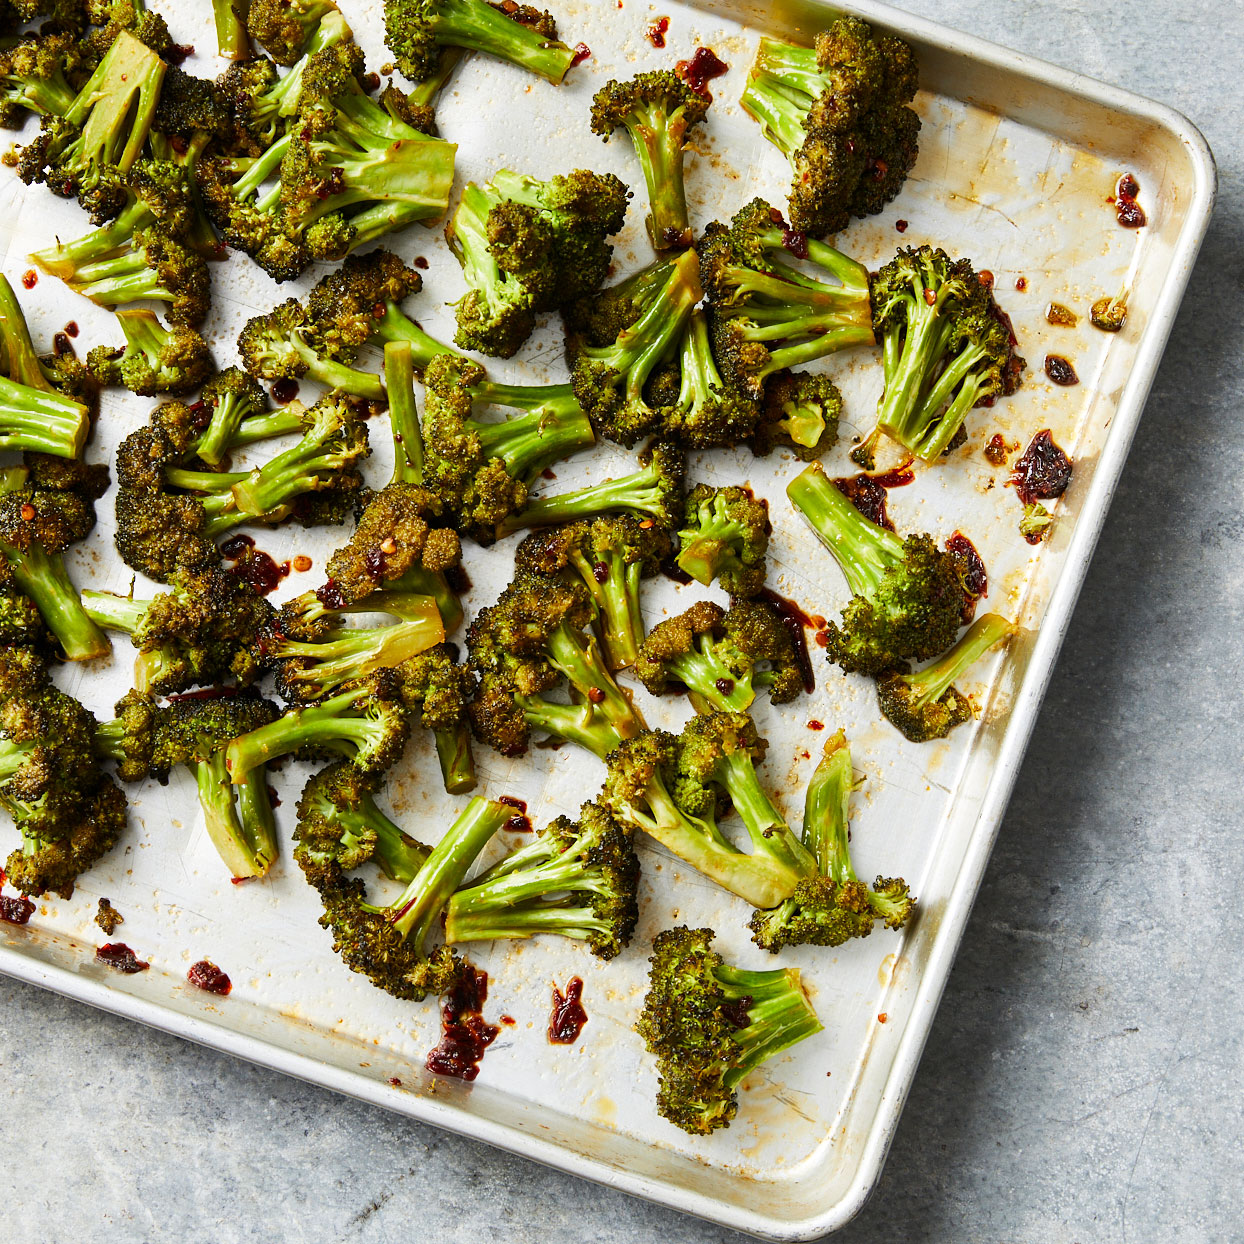 Honey and chipotle peppers coat roasted broccoli in this sweet and smoky side dish. Serve alongside grilled pork, roasted chicken or with any main dish that could use some kick.Source: EatingWell.com, July 2020